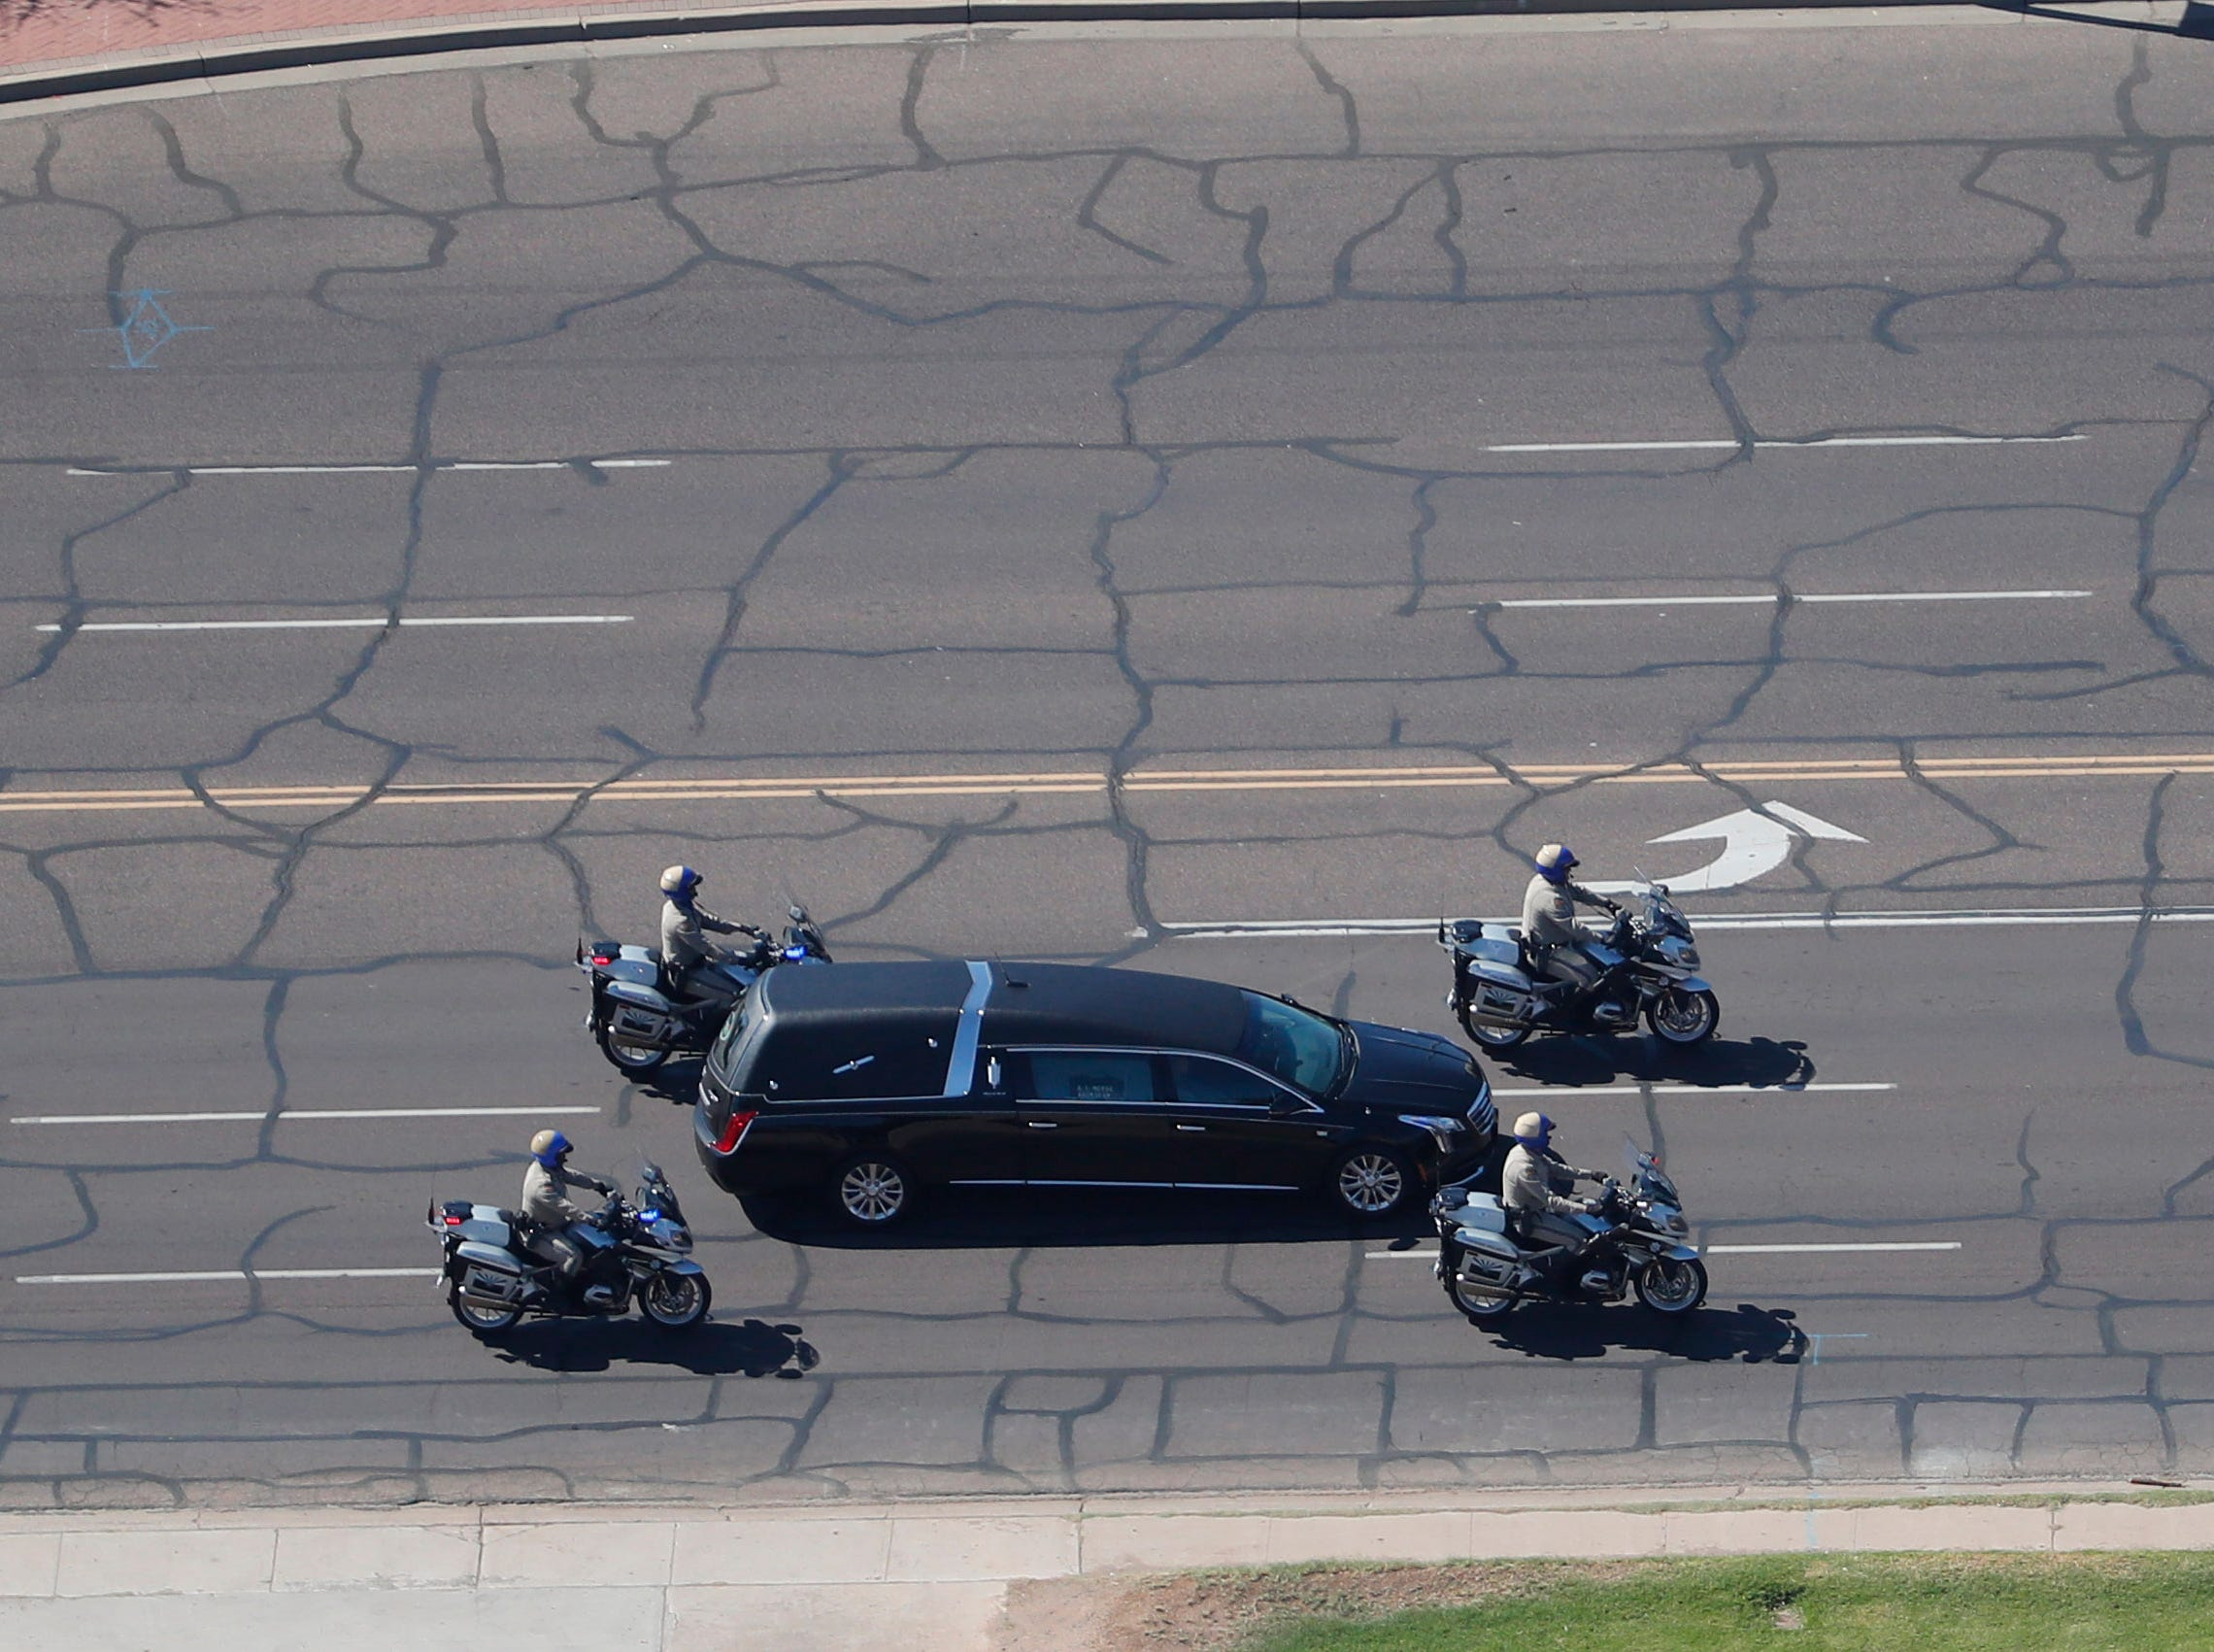 Sen. John McCain's motorcade makes its way to the Arizona State Capitol in Phoenix, Ariz. where the senator will lie in state August 29. 2018. The six-term Arizona senator died Saturday after a 13-month battle with brain cancer.